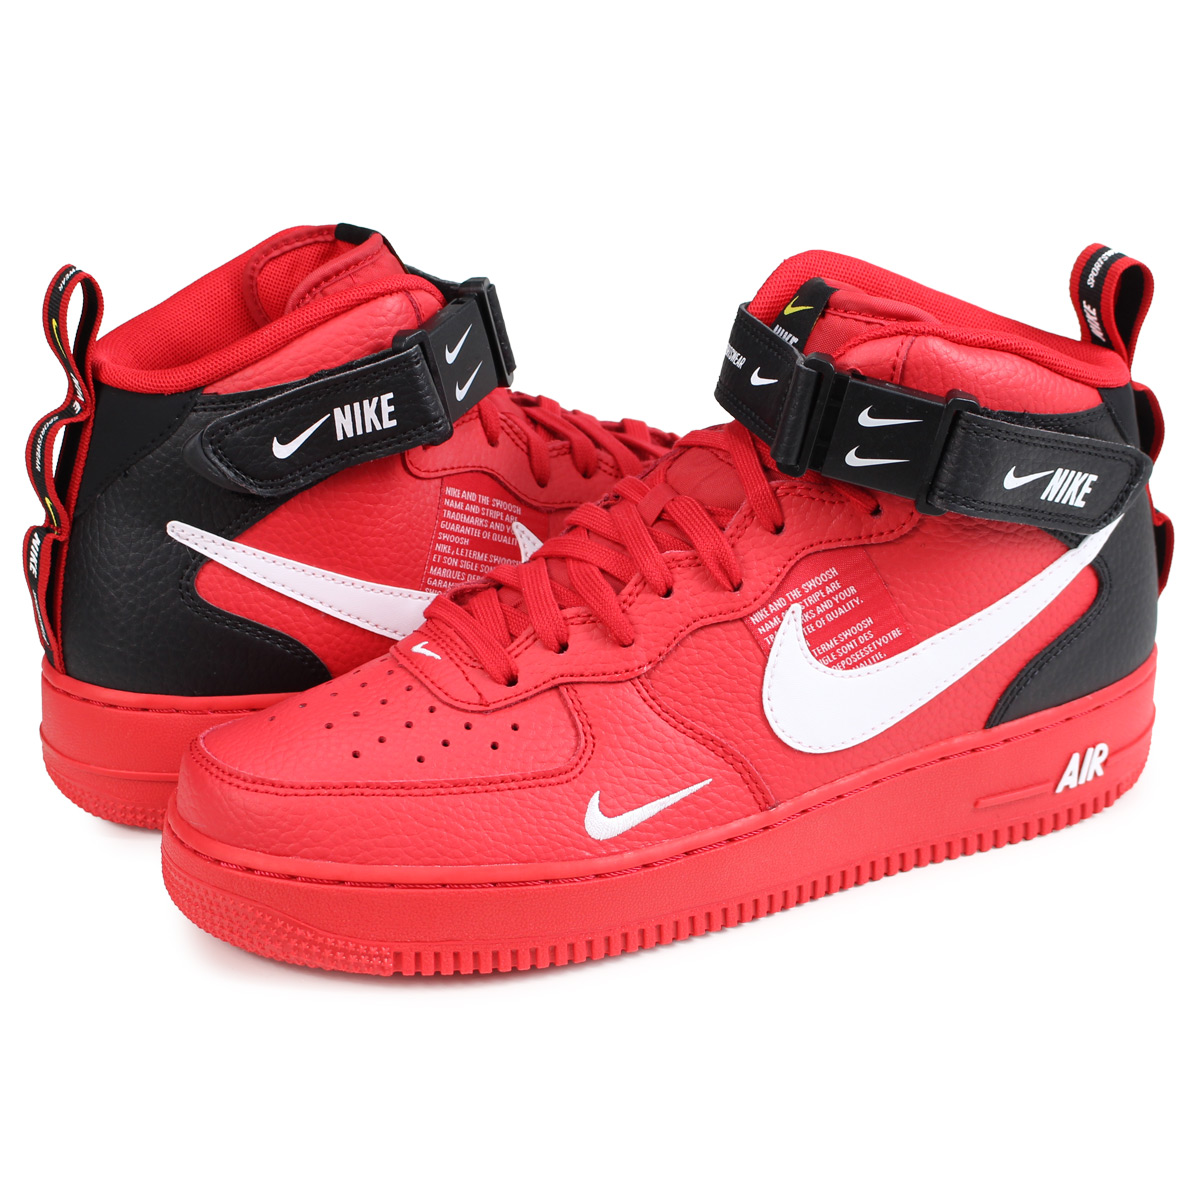 Nike NIKE air force 1 sneakers men AIR FORCE 1 MID 07 LV8 red 804,609-605  [load planned Shinnyu load in reservation product 11/19 containing] [1811]